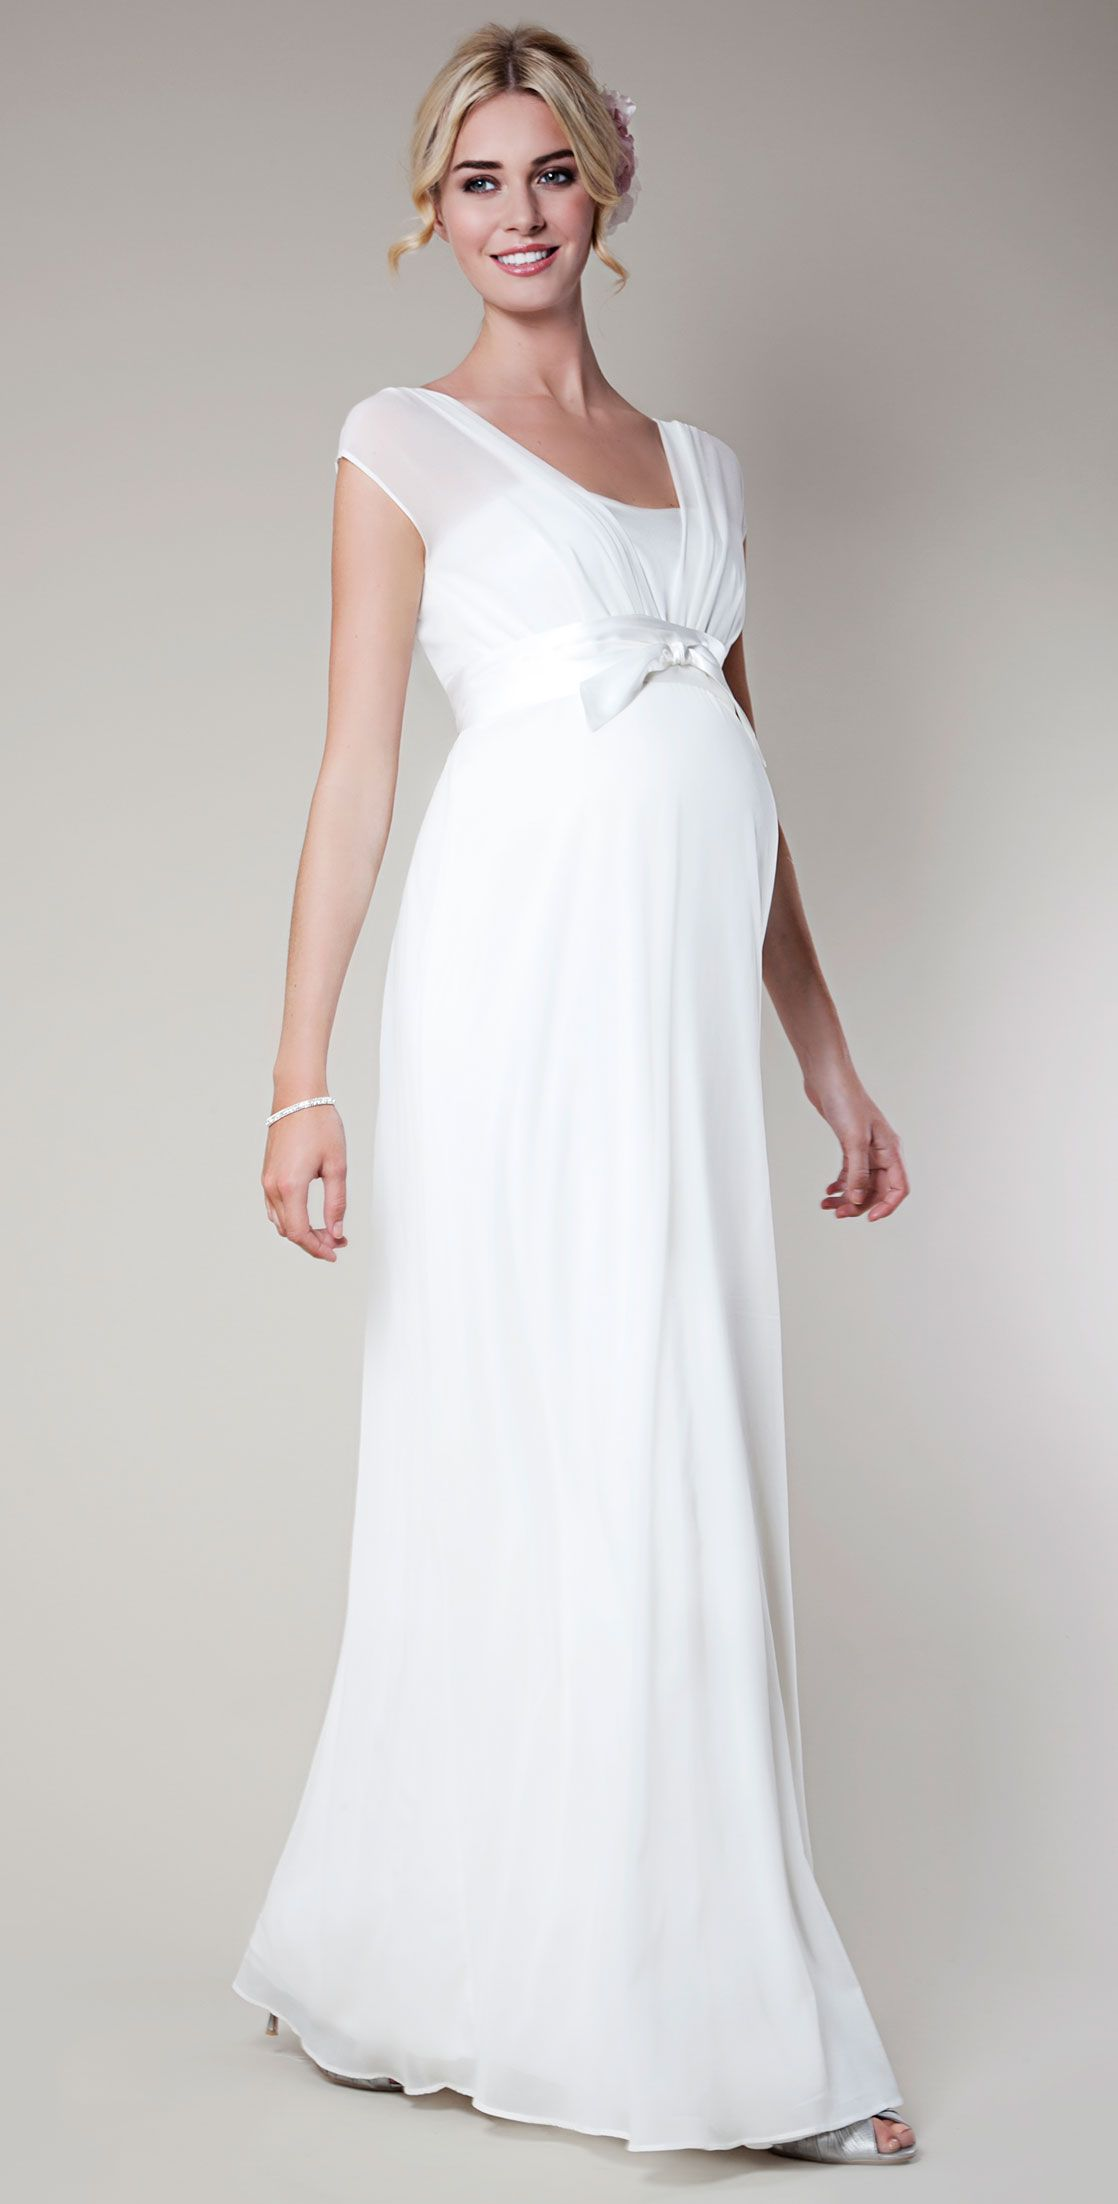 Cute White Maternity Maxi Dresses | Fashion Maternity Style ...